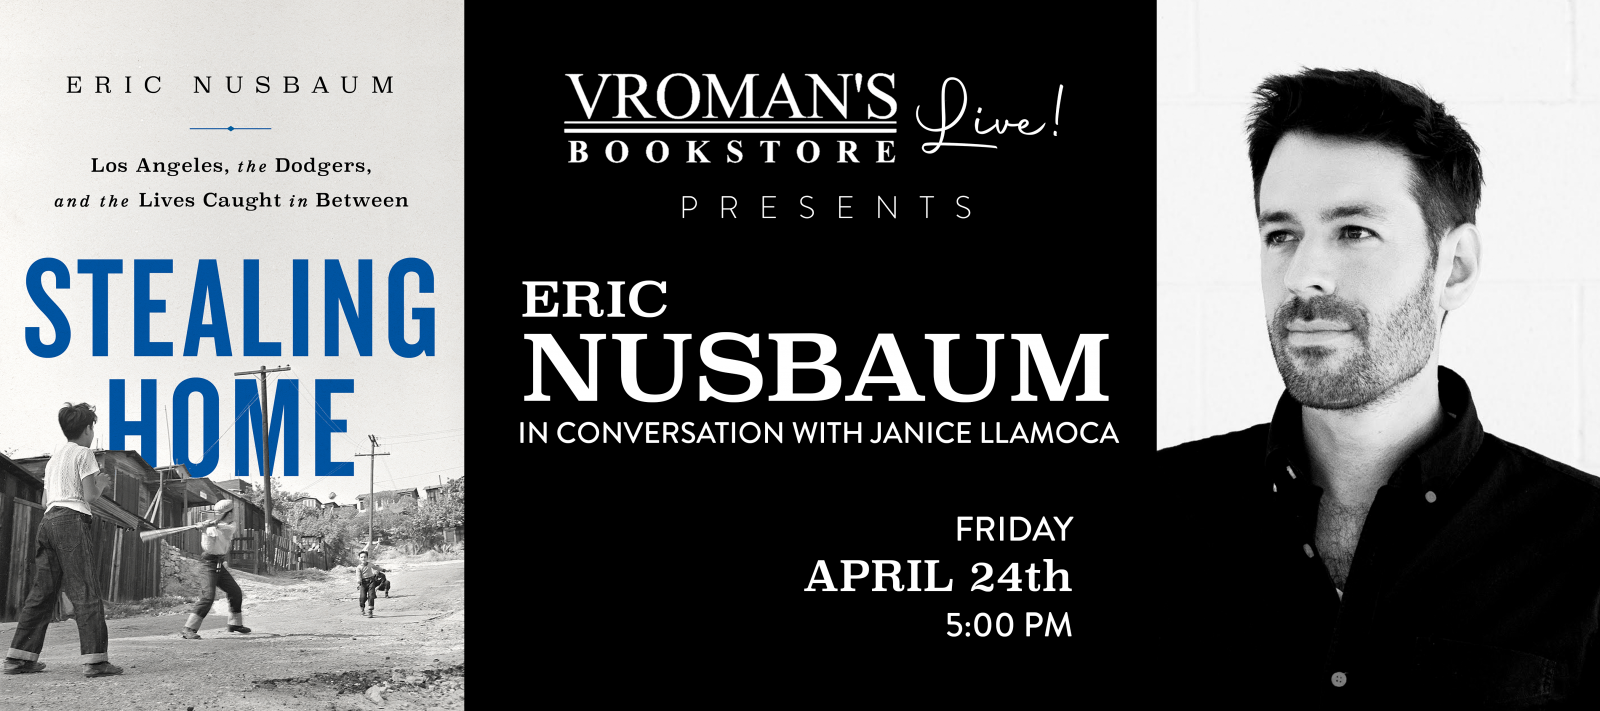 Vroman's Live Presents Eric Nusbaum, in conversation with Janice Llamoca on Friday April 24th at 5pm